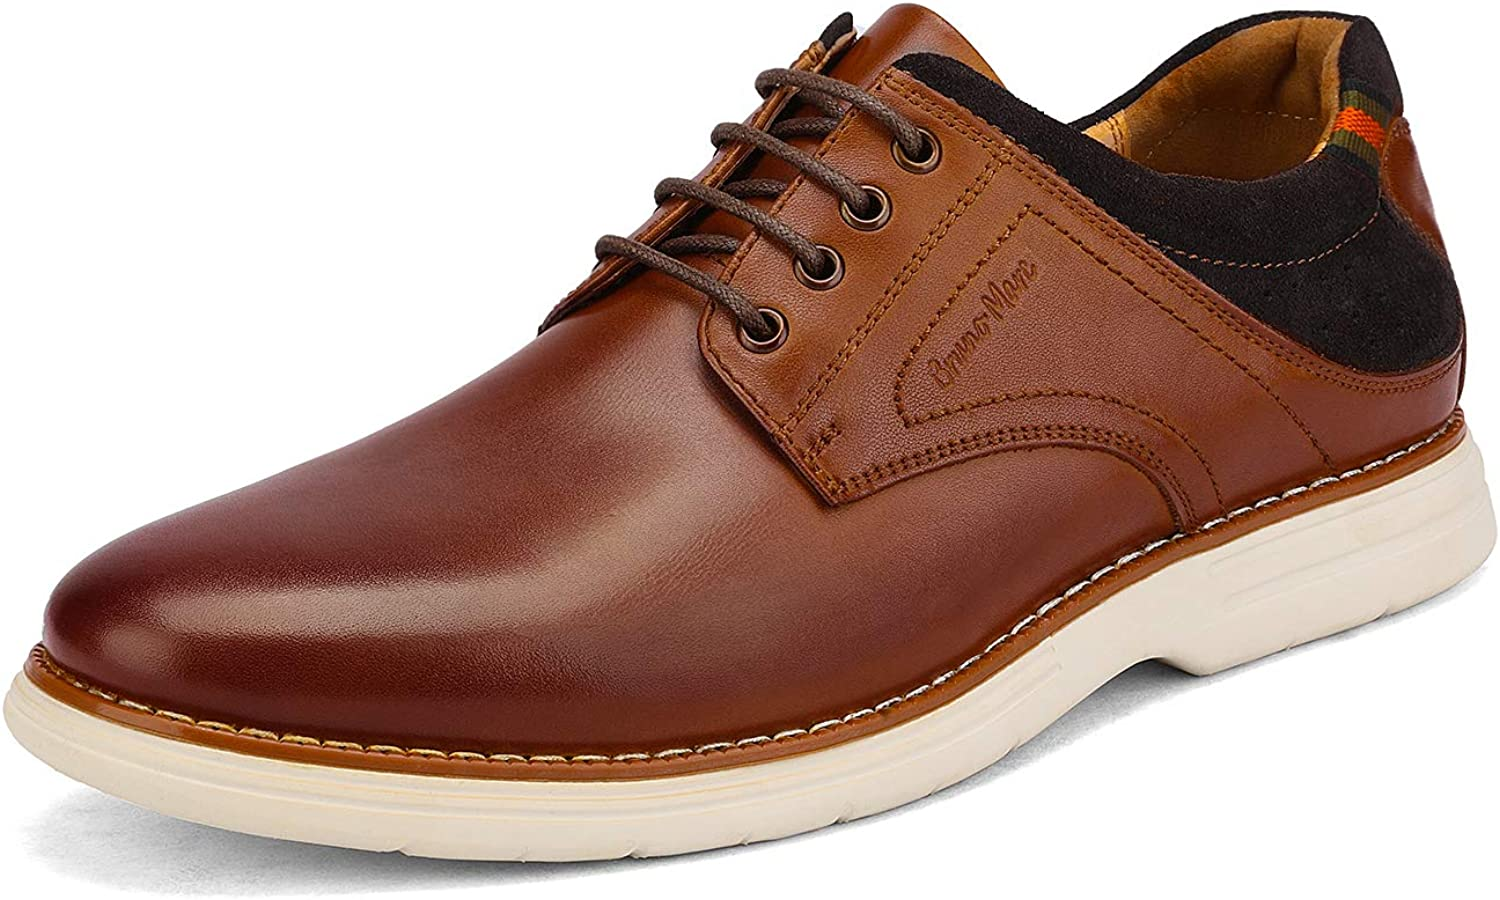 Bruno Marc Mens Oxford Dress Sneakers Casual Dress Shoes